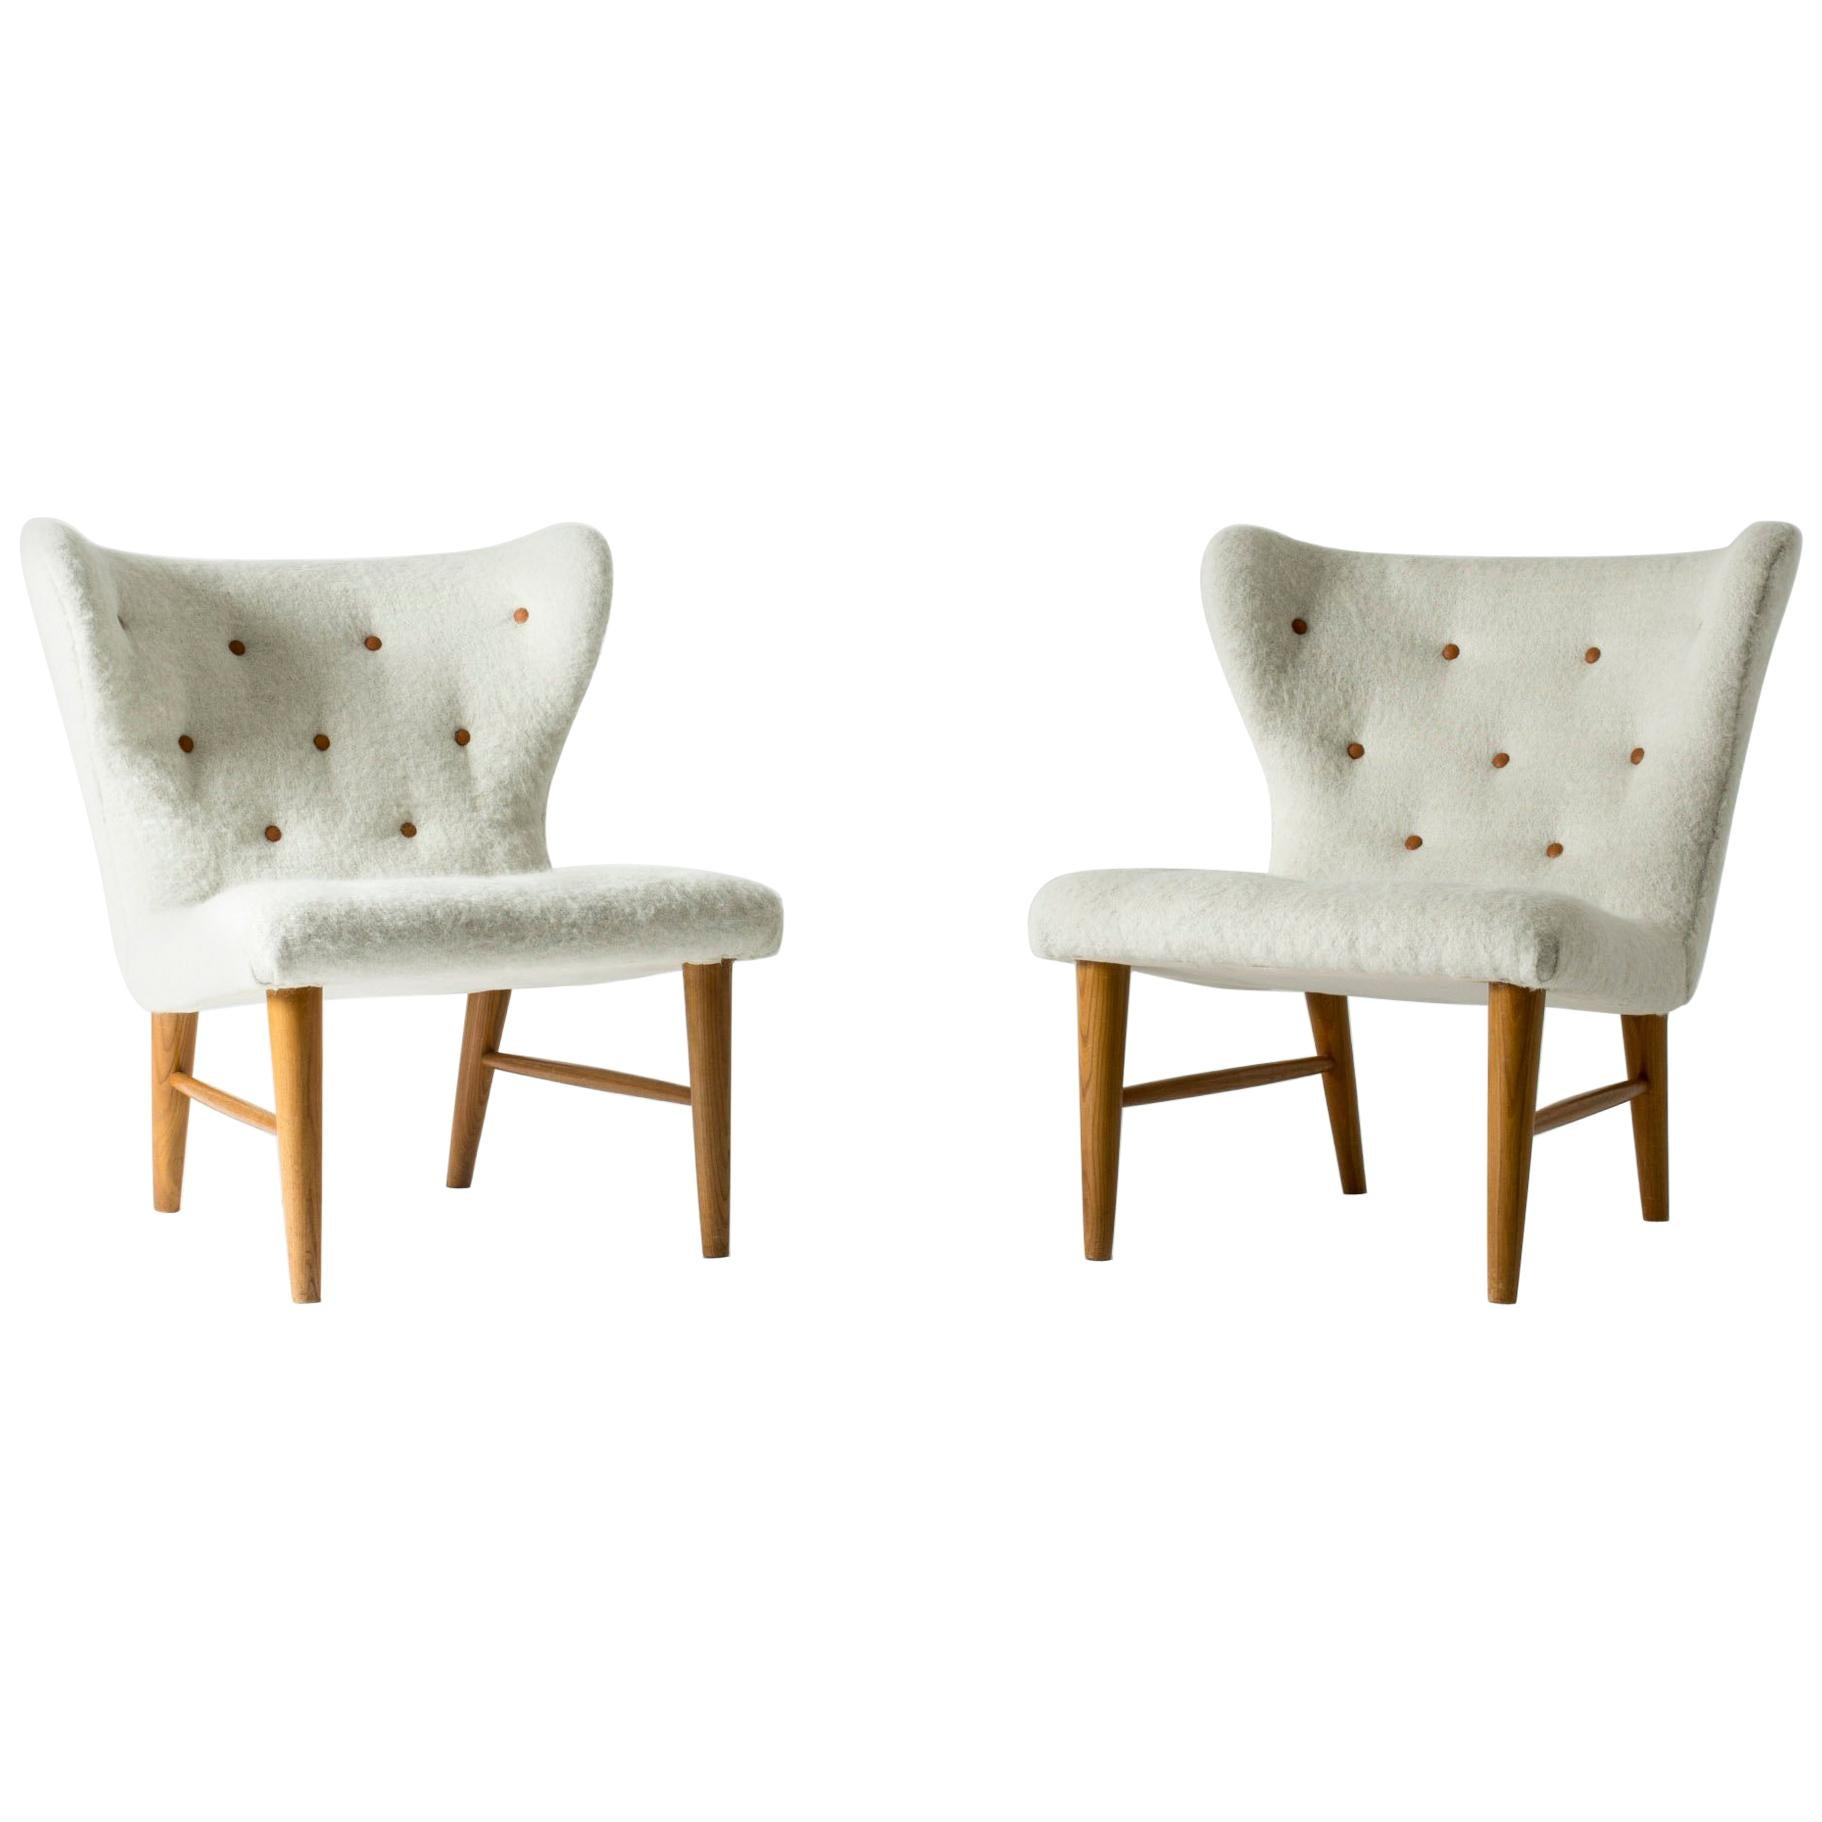 Pair of 1940s Lounge Chairs by Eric Karlén